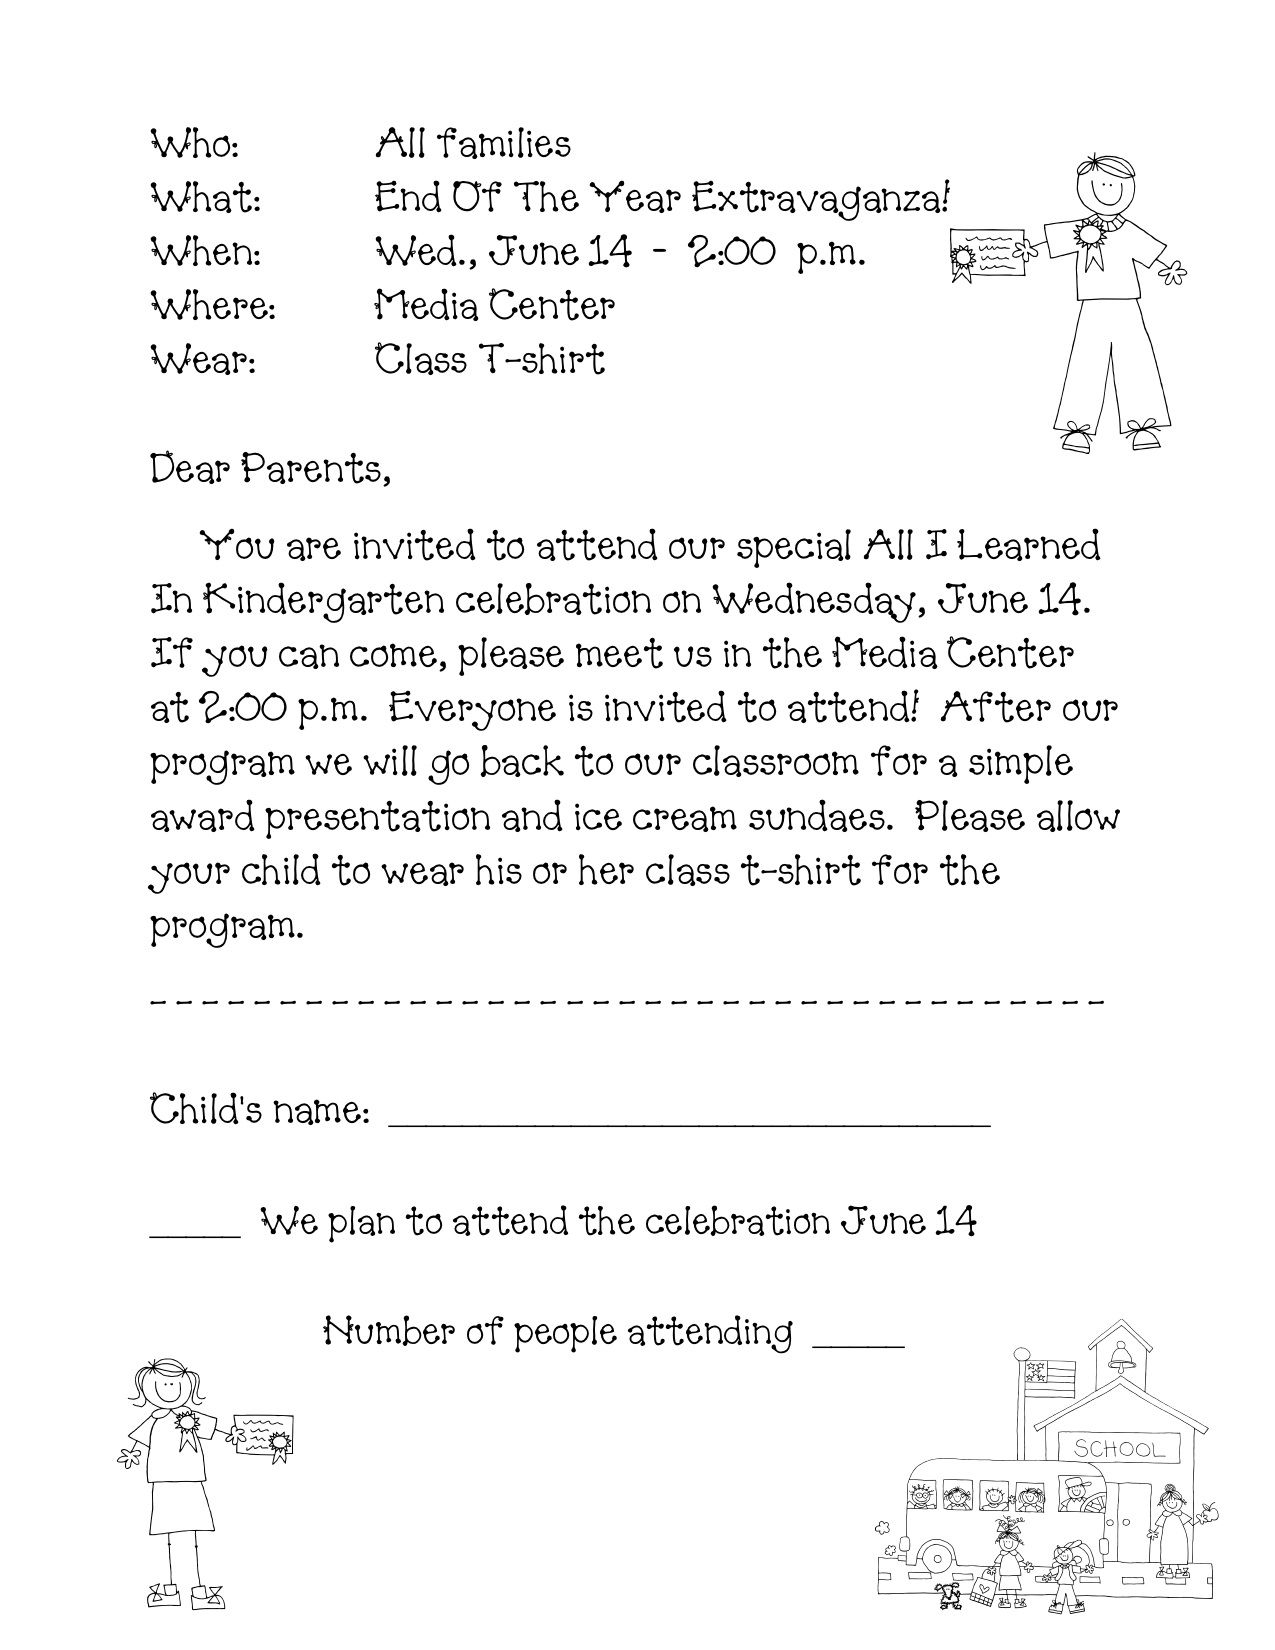 Letter A Template for Preschool - Preschool Graduation Program Sample Google Search